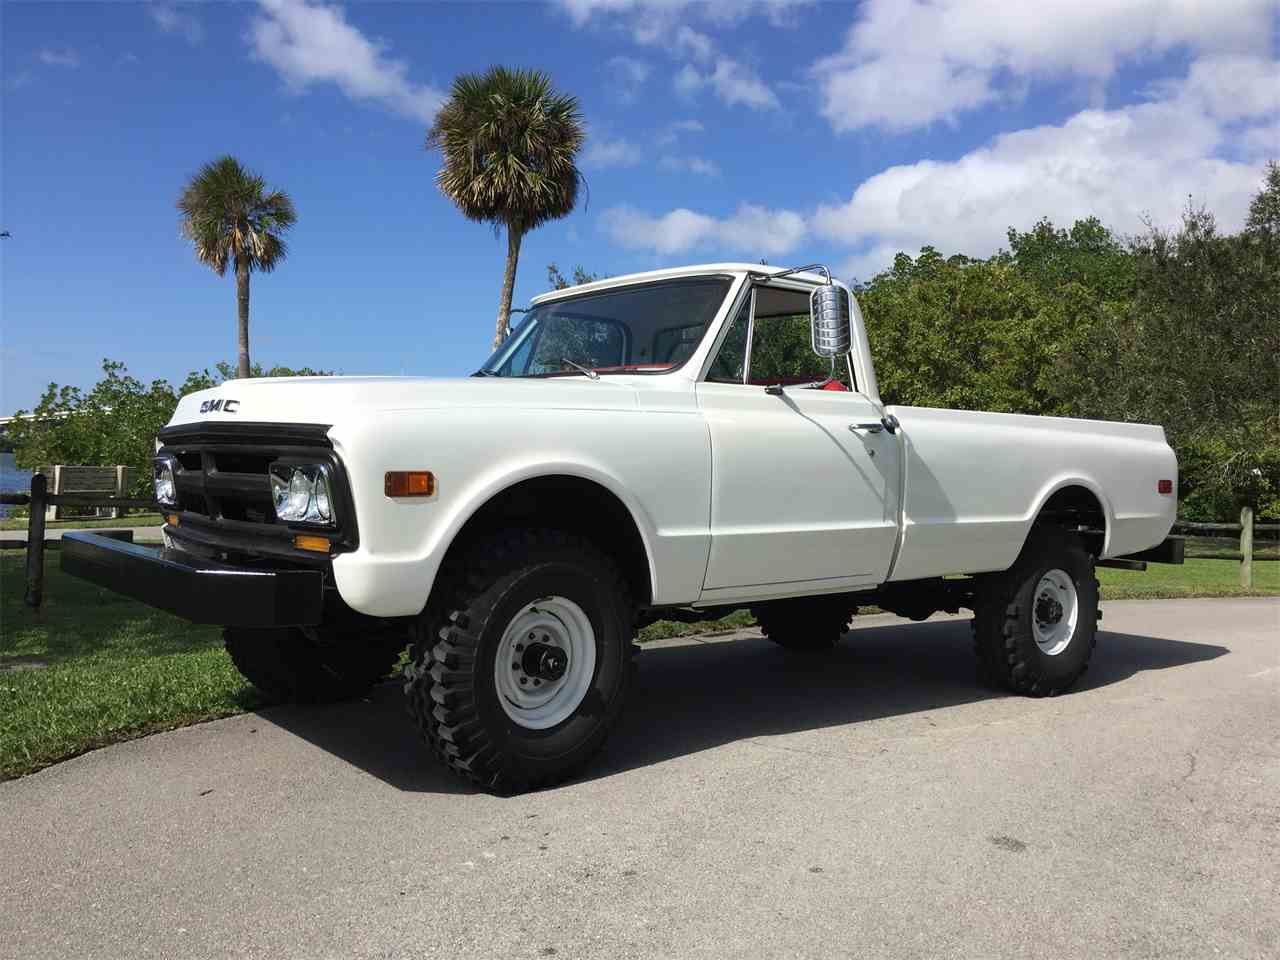 Gmc Truck For Sale >> 1969 Gmc Truck For Sale Classiccars Com Cc 943178